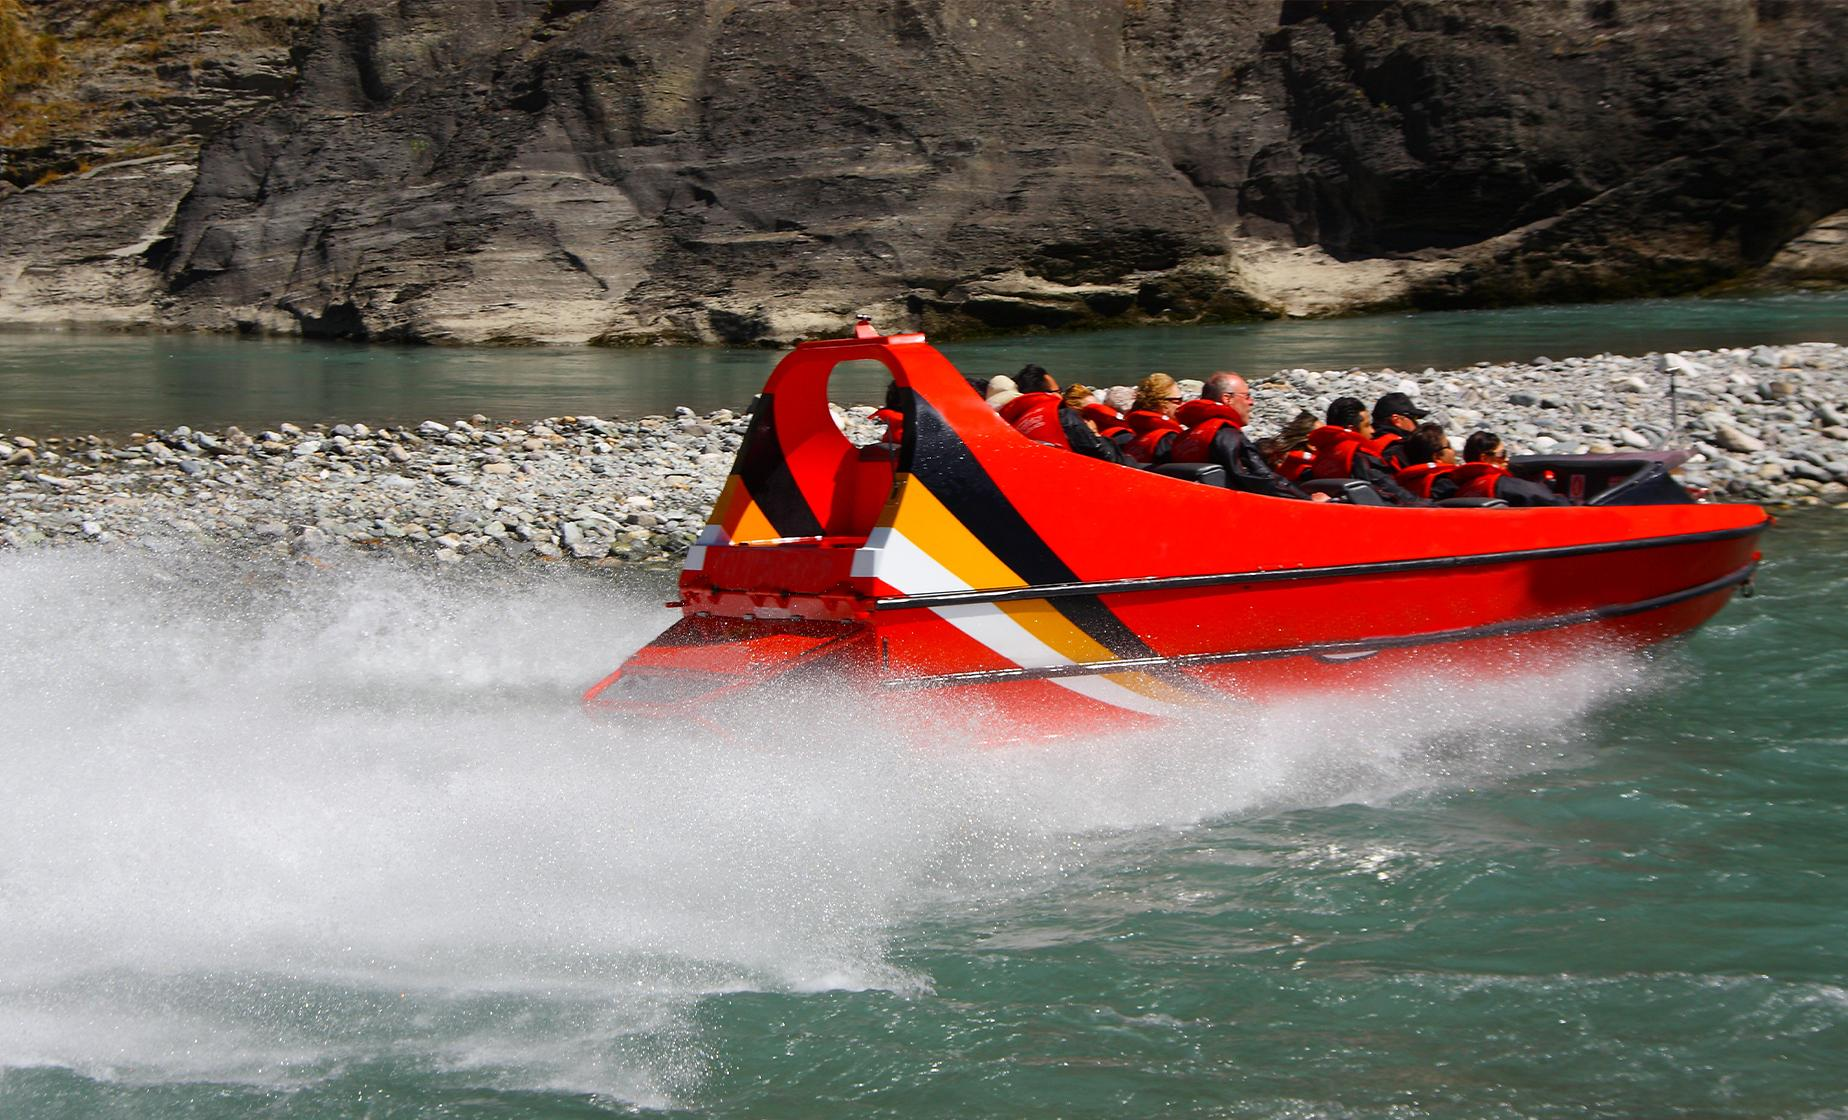 Auckland Jet Boat and Voyager Maritime Museum Tour (Viaduct Harbour)